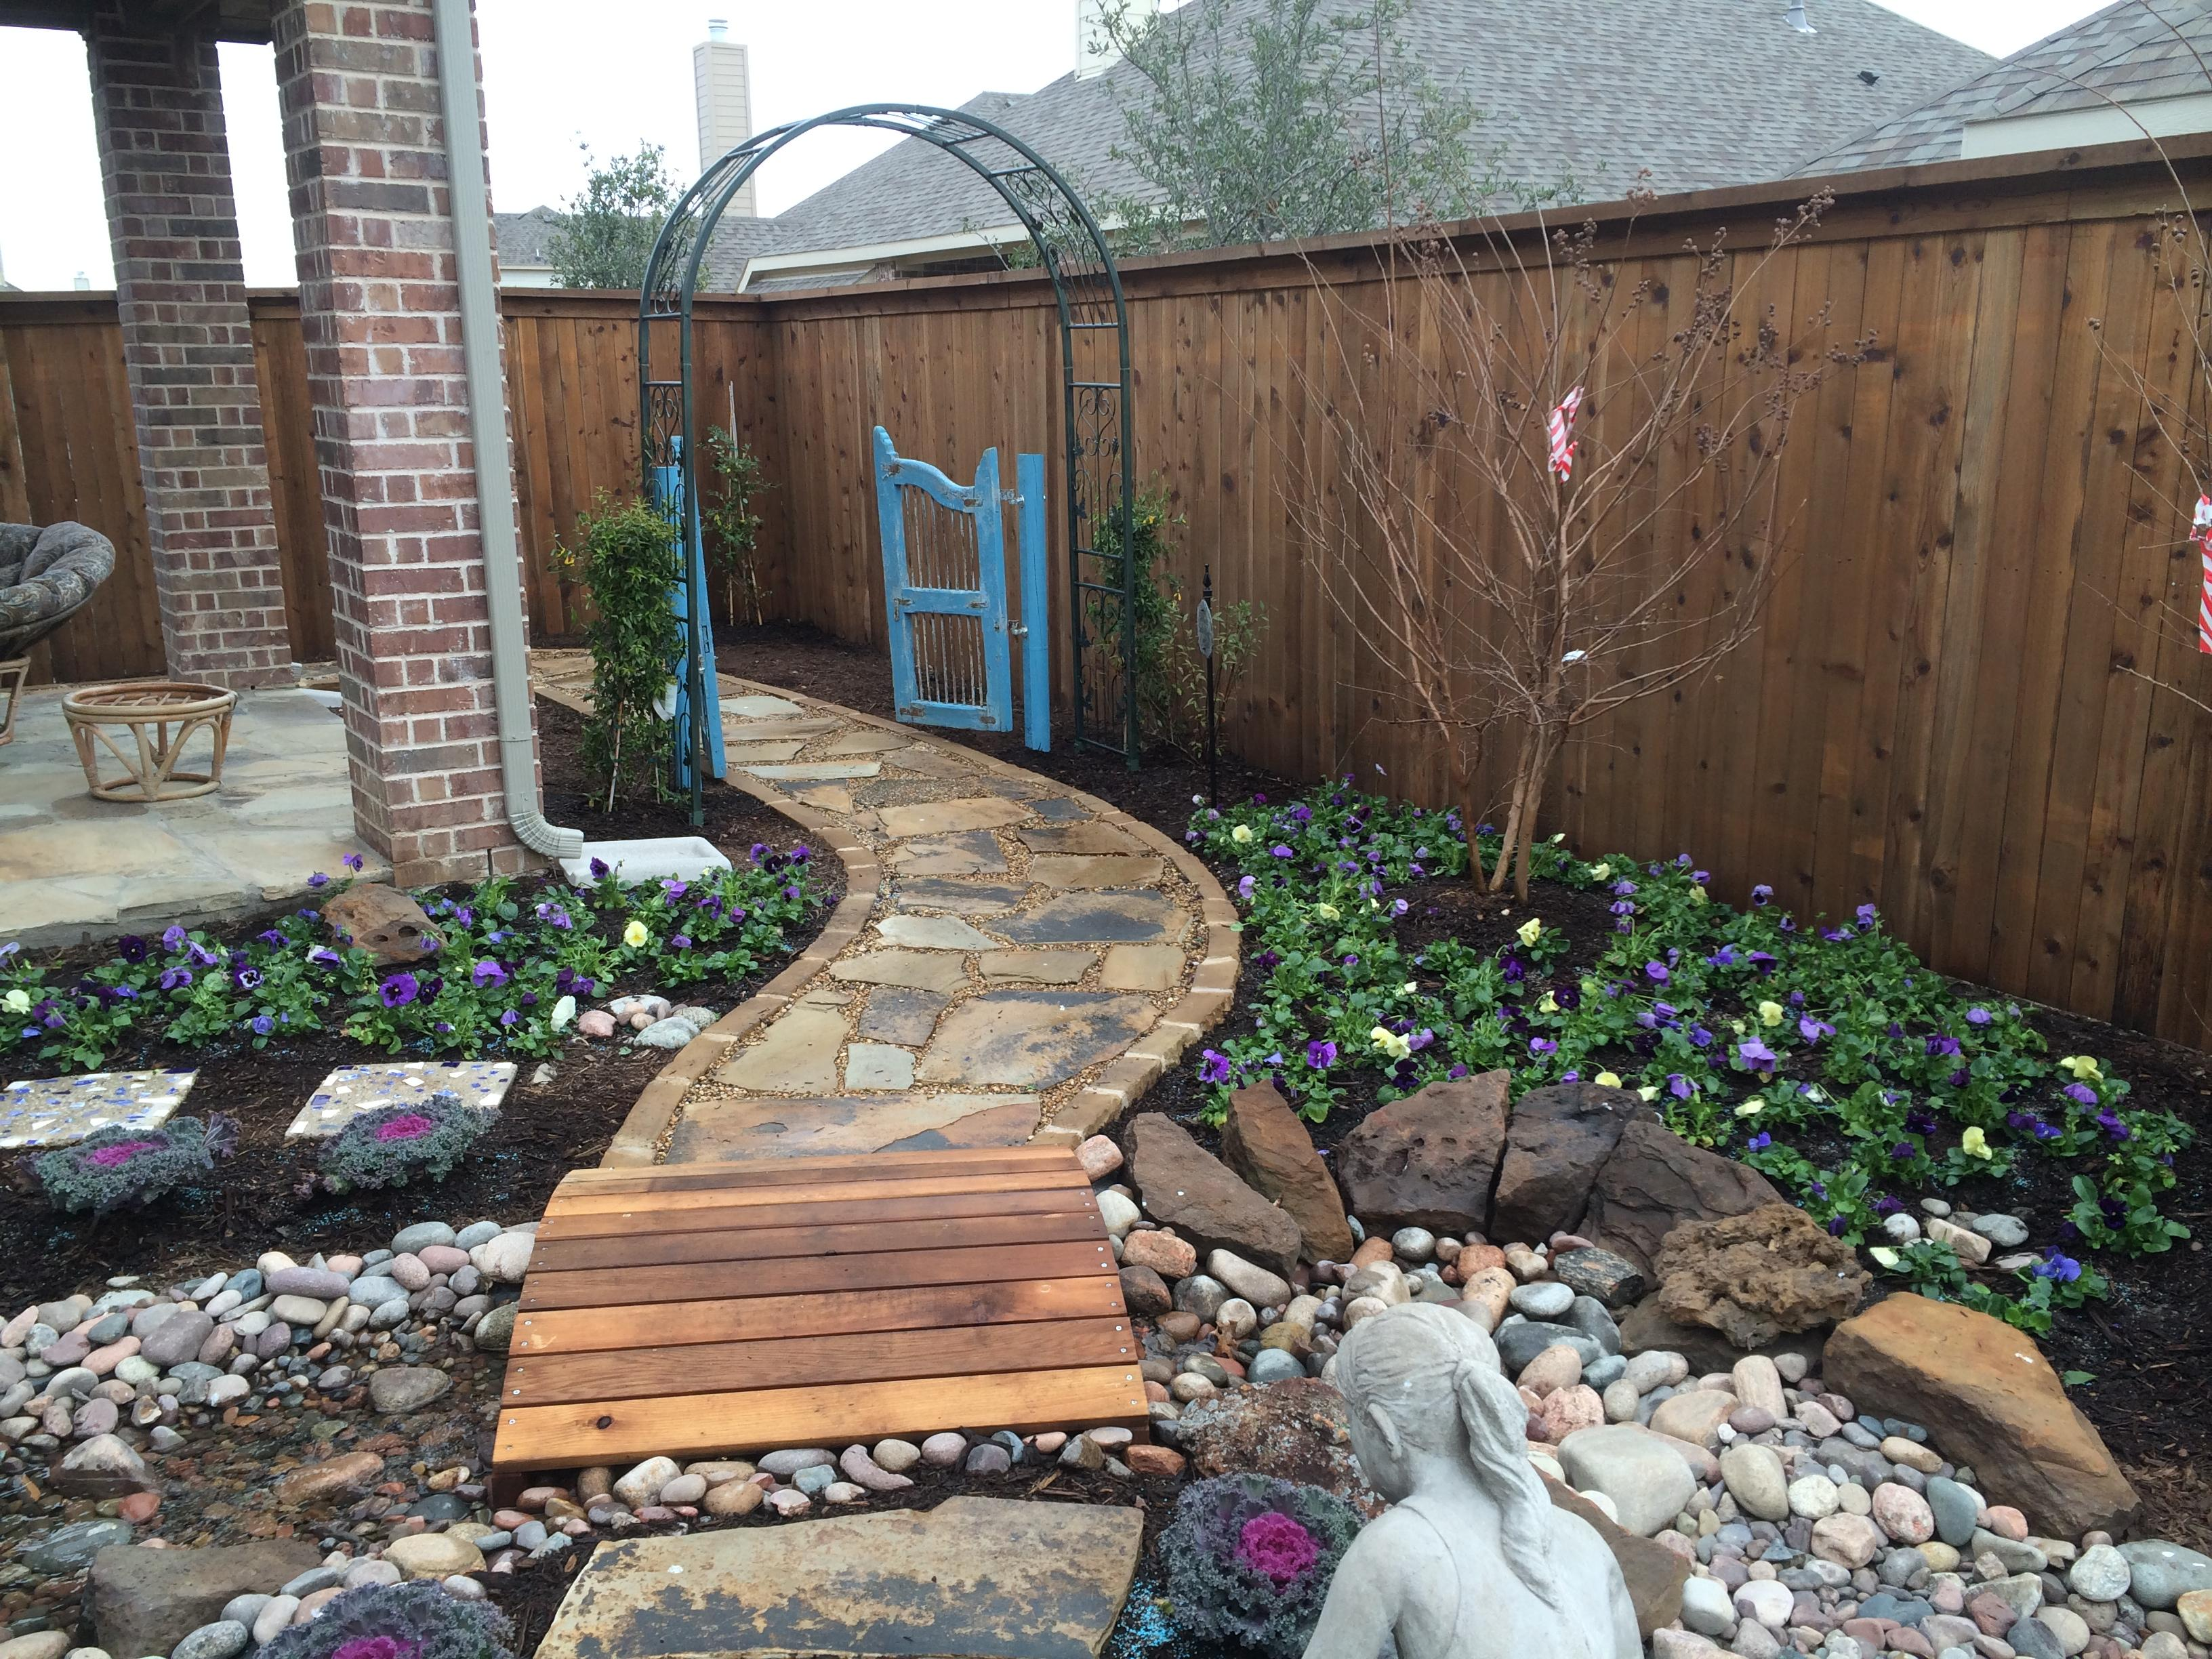 Be Green Texas Lawn Care & Landscaping